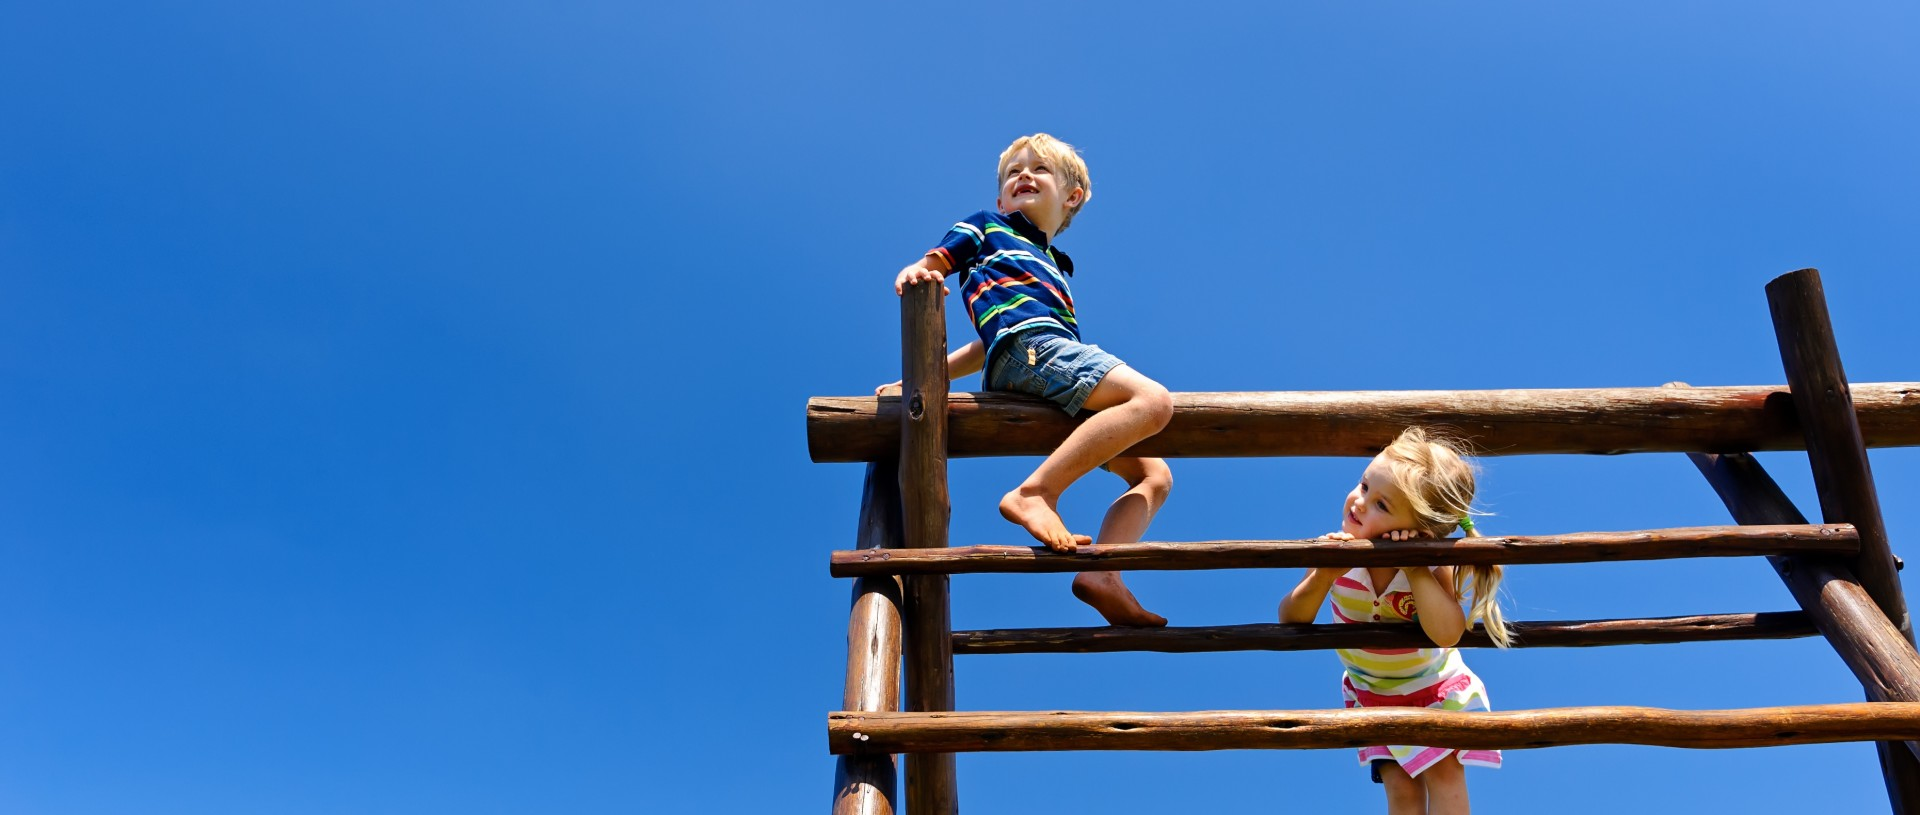 children playing on climbing bars